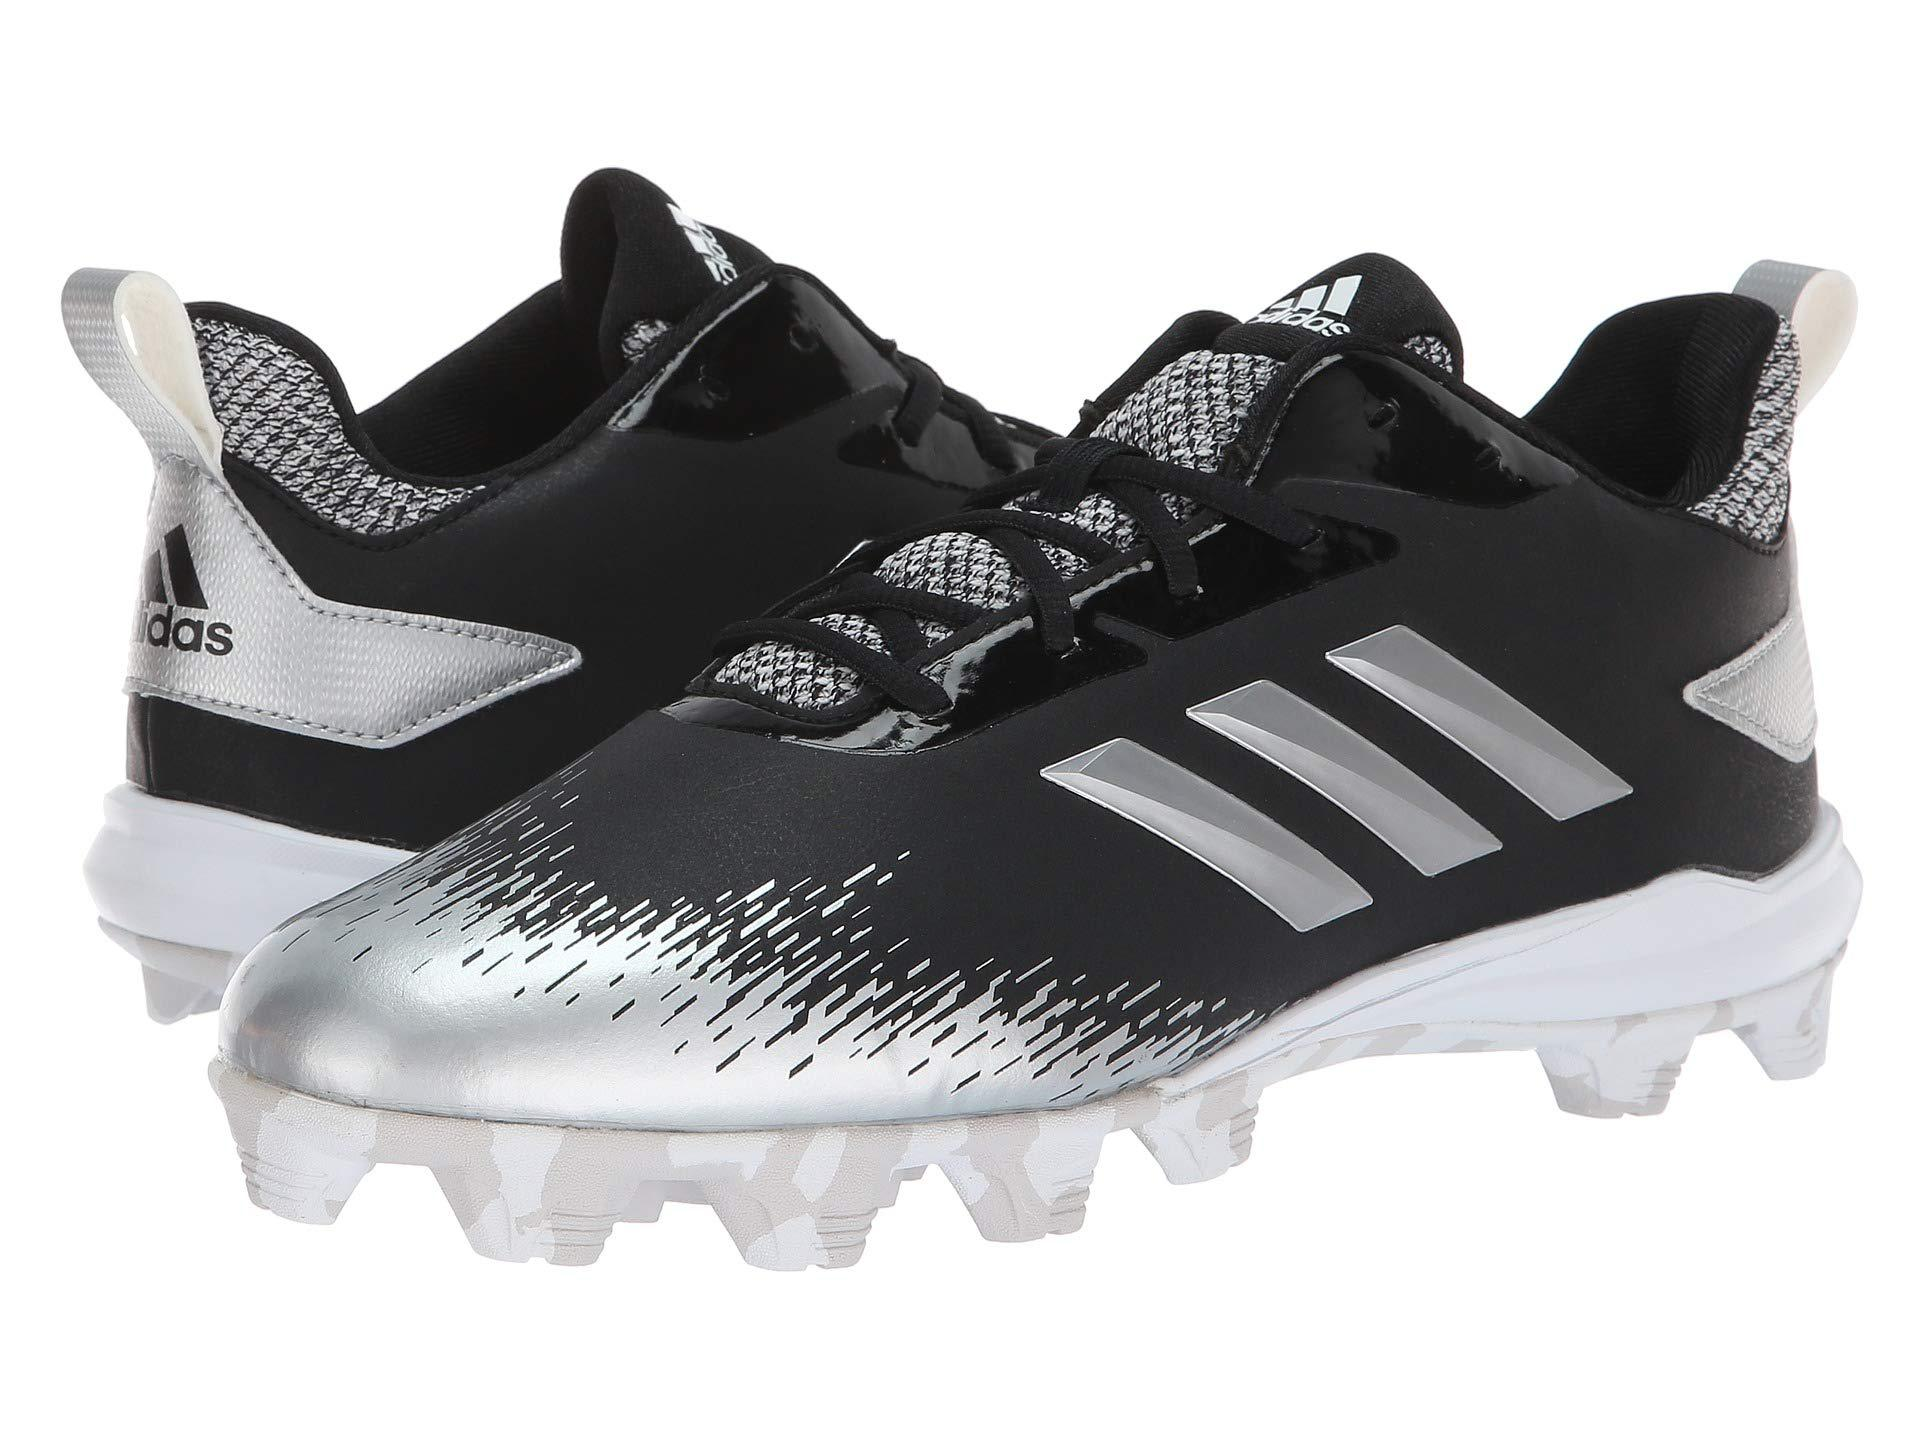 meet 8ce82 3986b Adidas - Afterburner V Md (white silver Metallic grey One) Men s Cleated.  View fullscreen